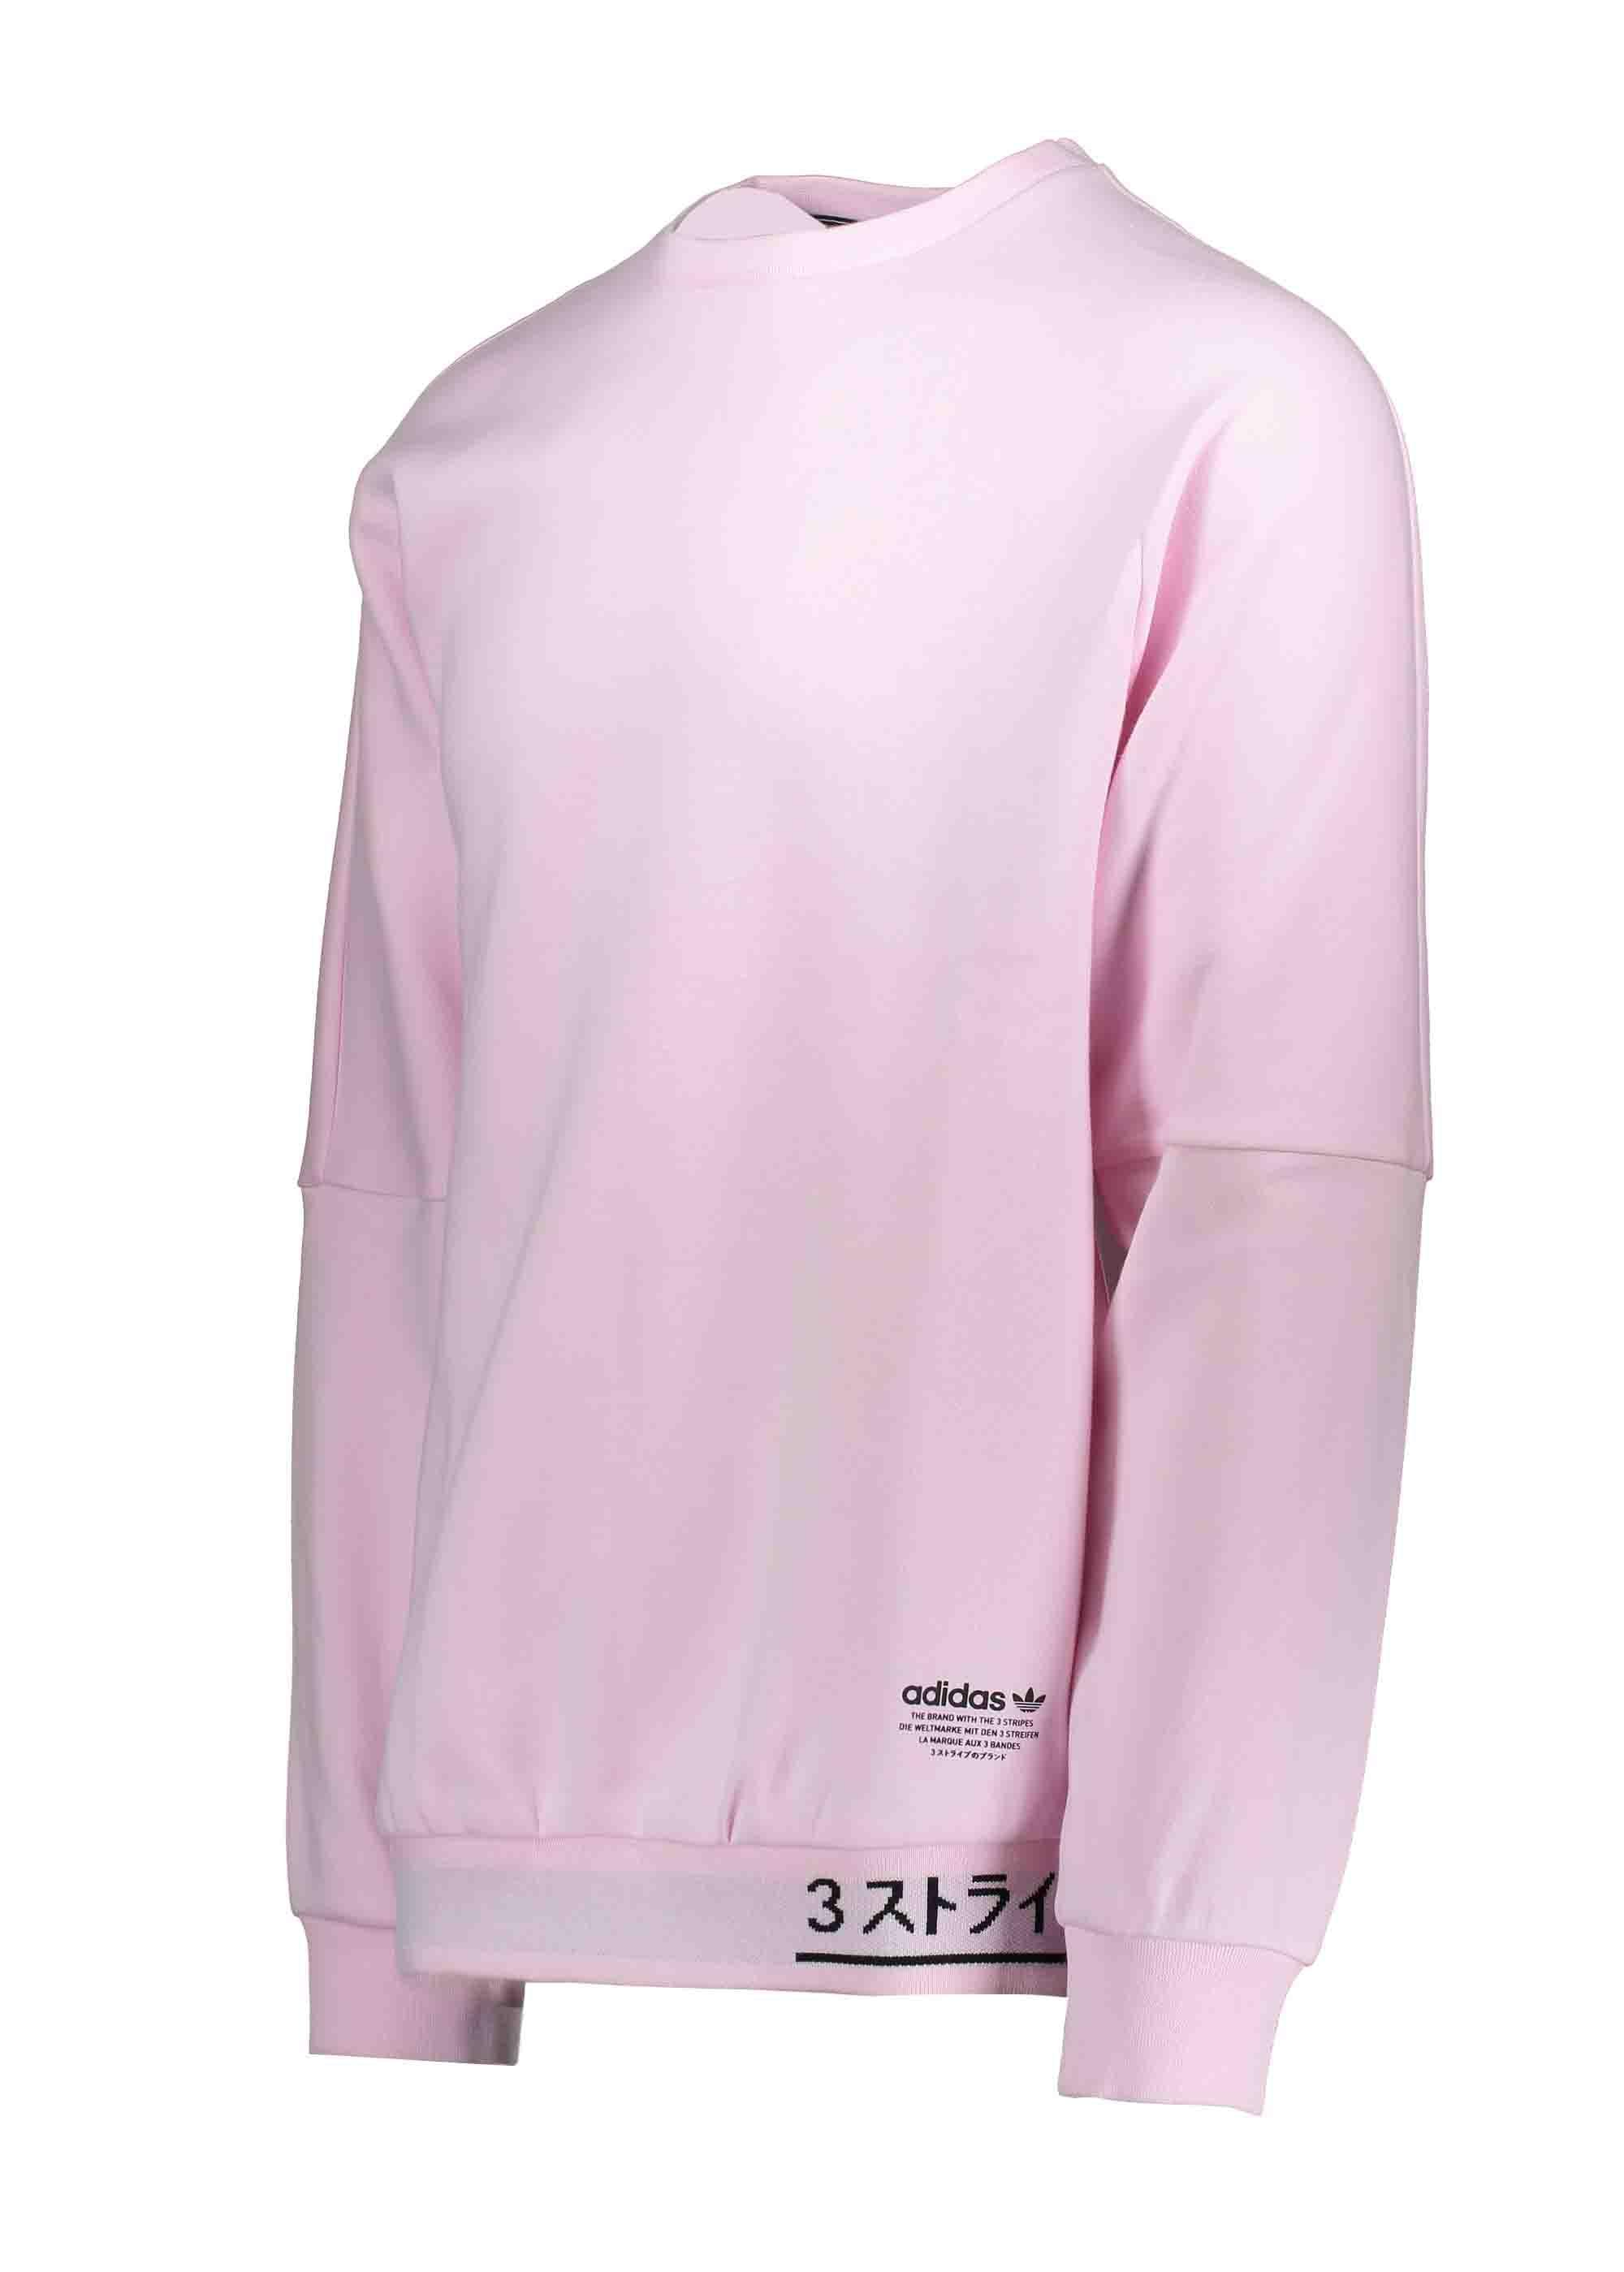 3ecbe7a8 adidas Originals Apparel NMD Sweater - Clear Pink - Triads Mens from ...